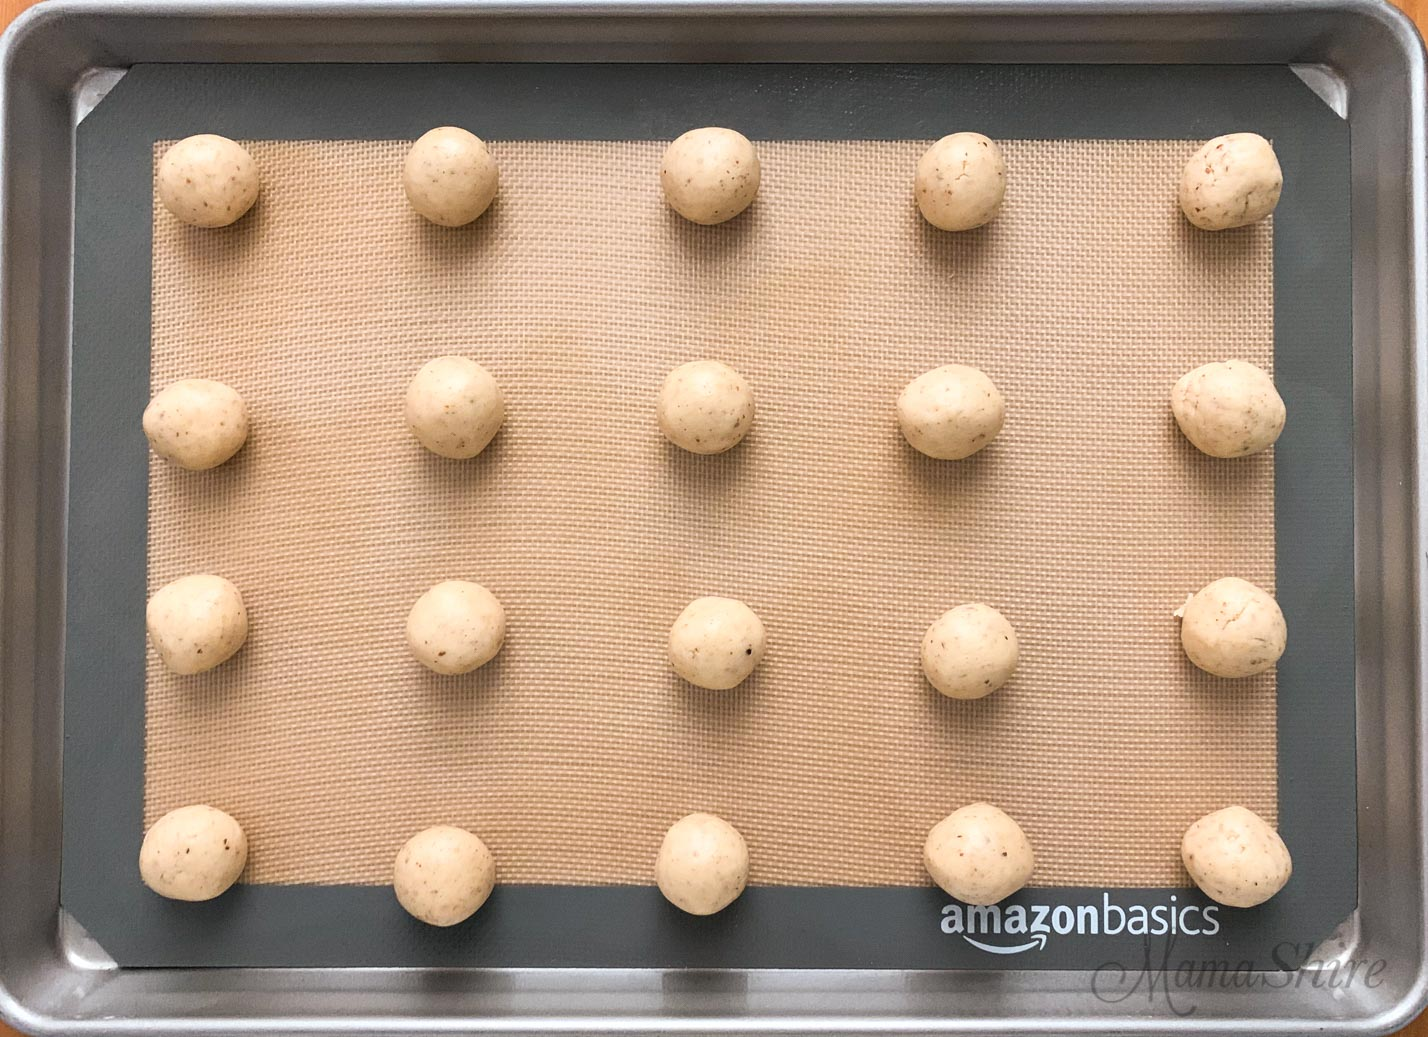 Baking pan with gluten-free snowball cookie dough.